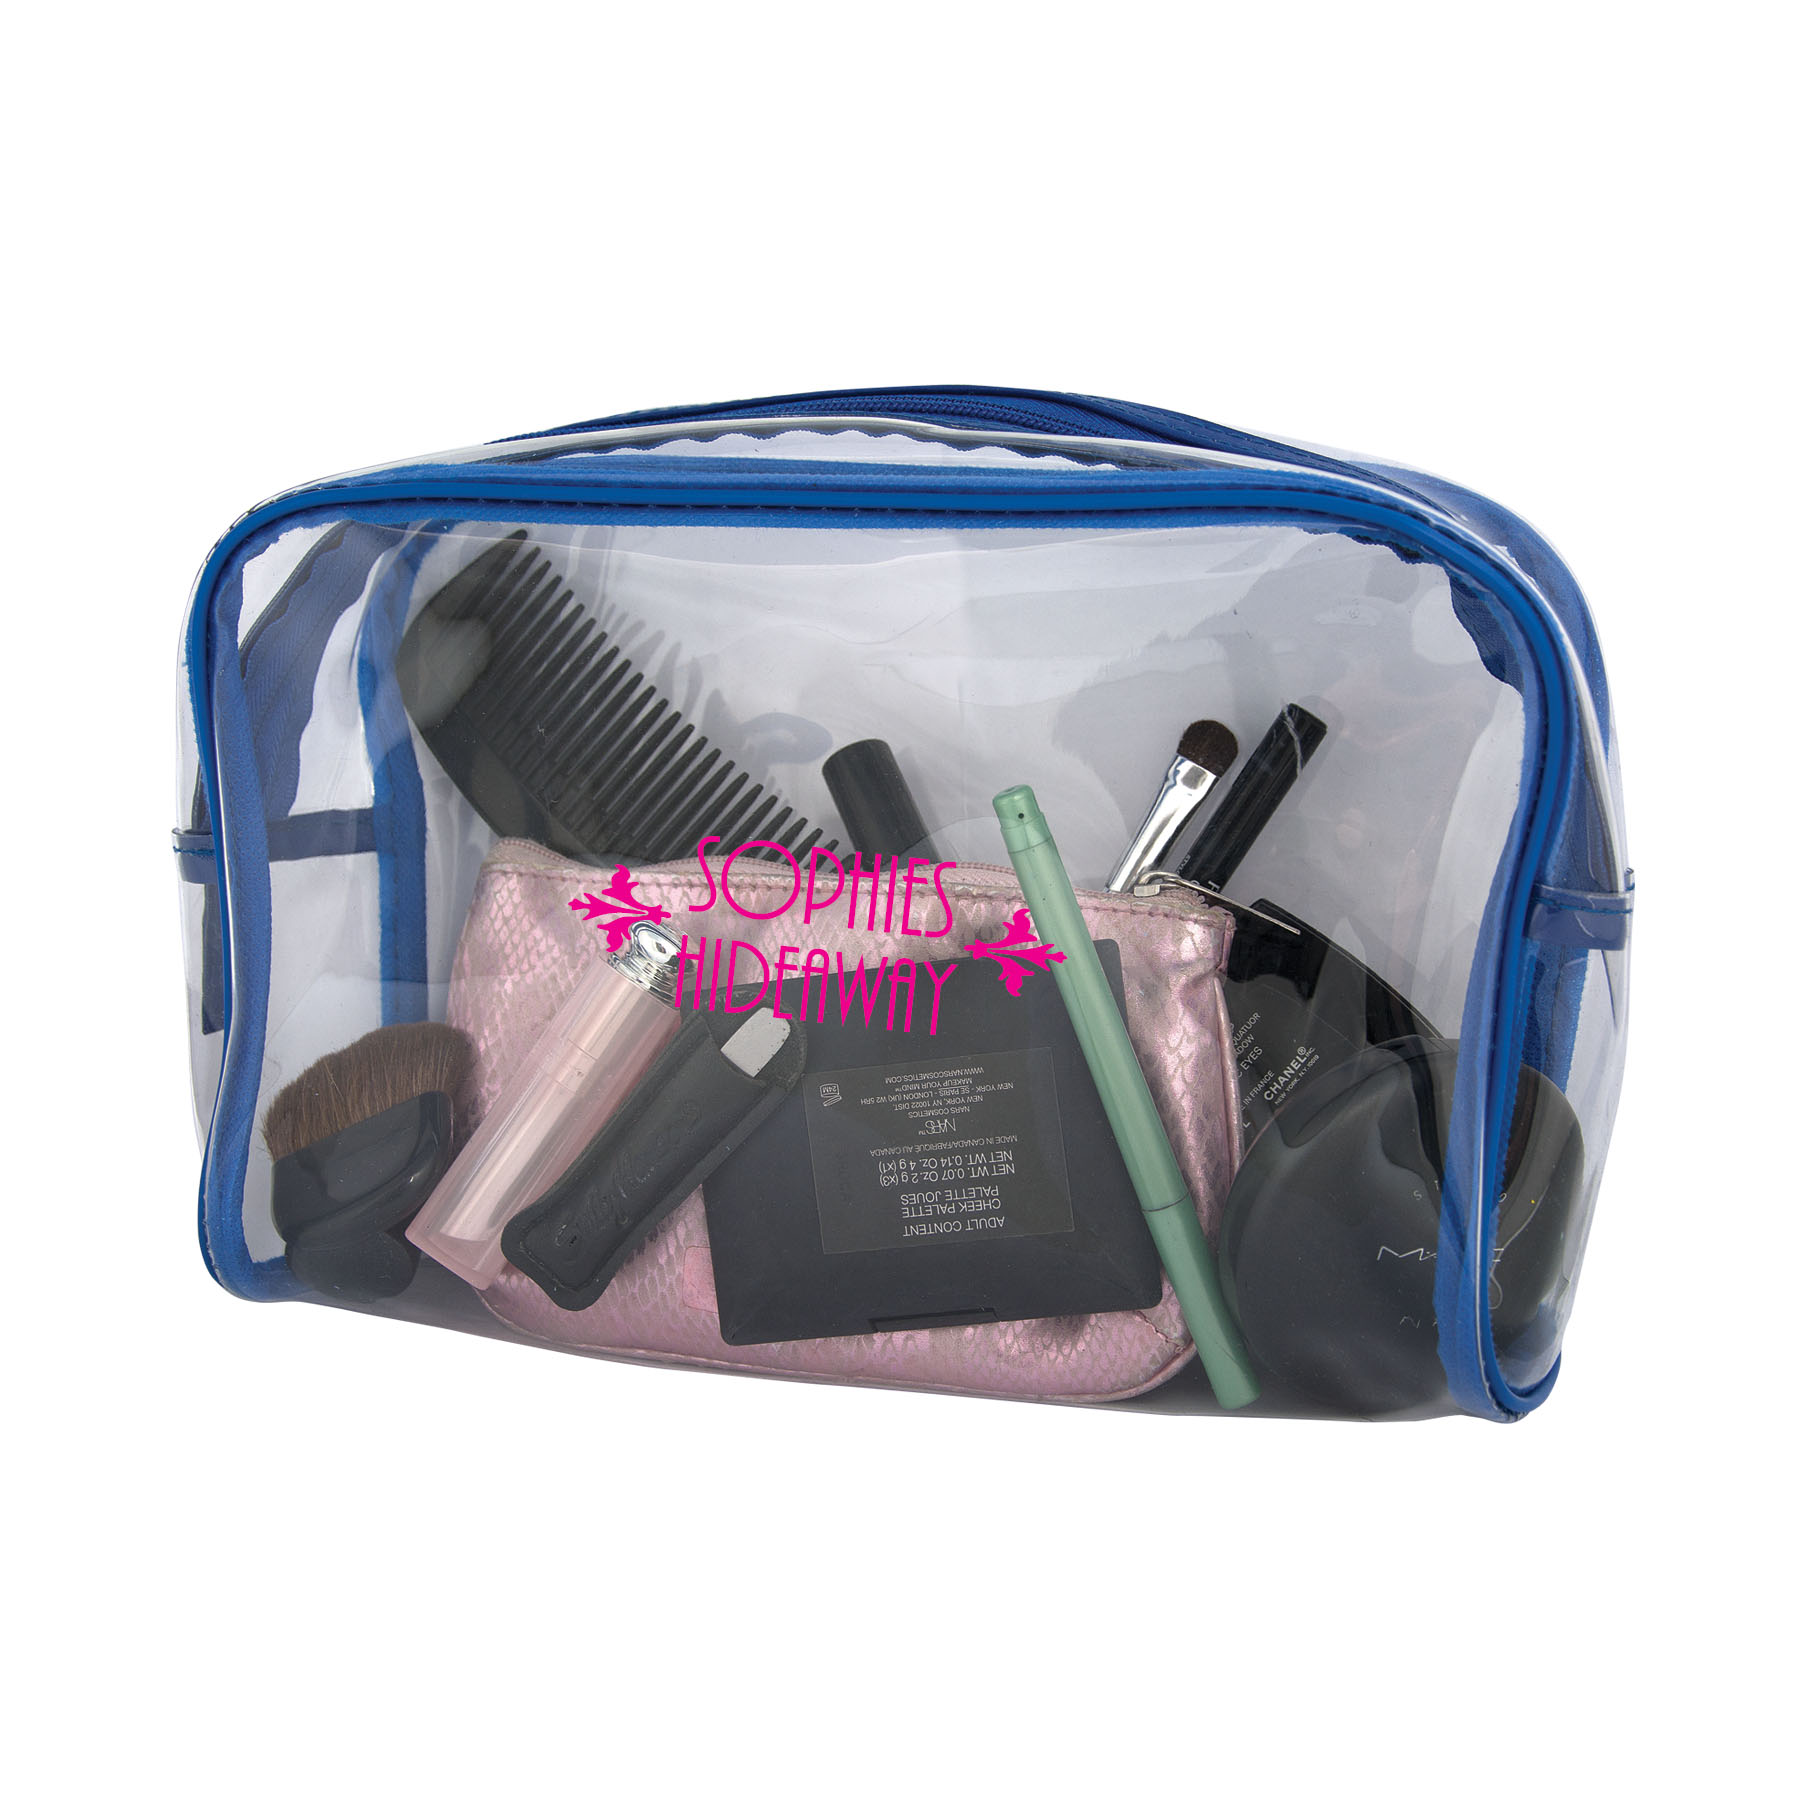 Falleg Toiletry Bag, P8964, 1 Colour Imprint